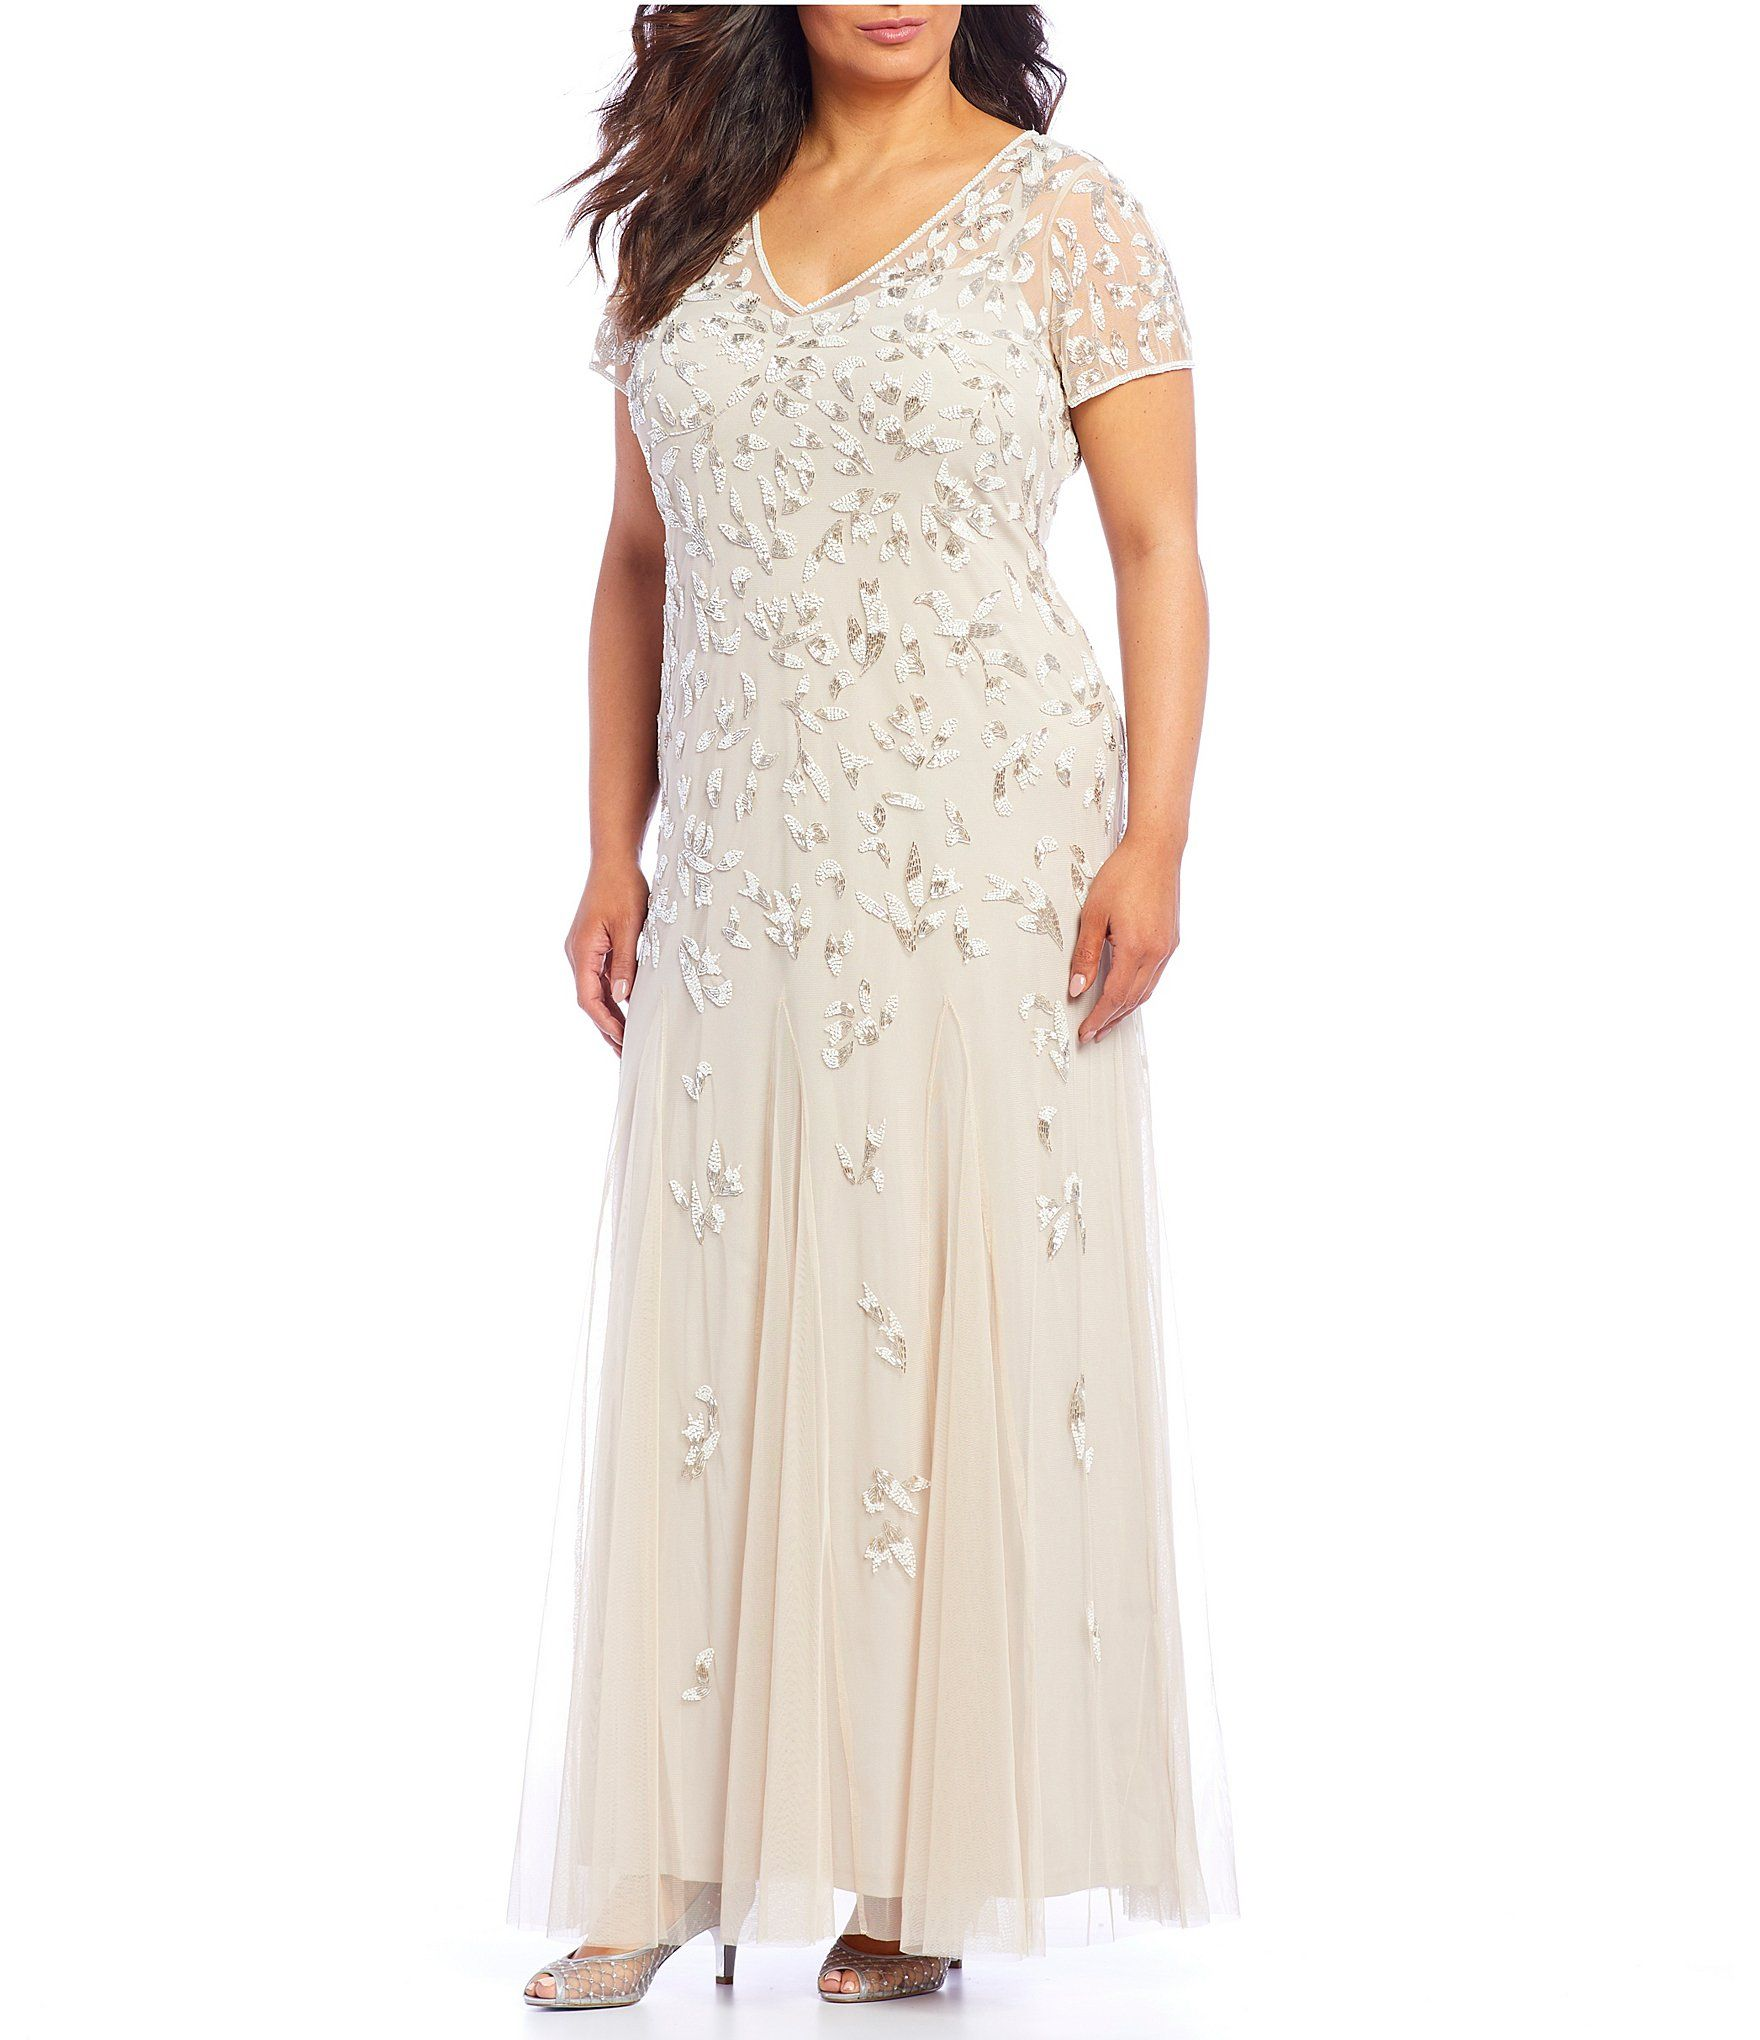 Shop For Adrianna Papell Plus Size Beaded Short Sleeve Long Gown At Dillards Com Visit Dillards Com To Find C Dillards Wedding Dresses Long Gown Dress Gallery